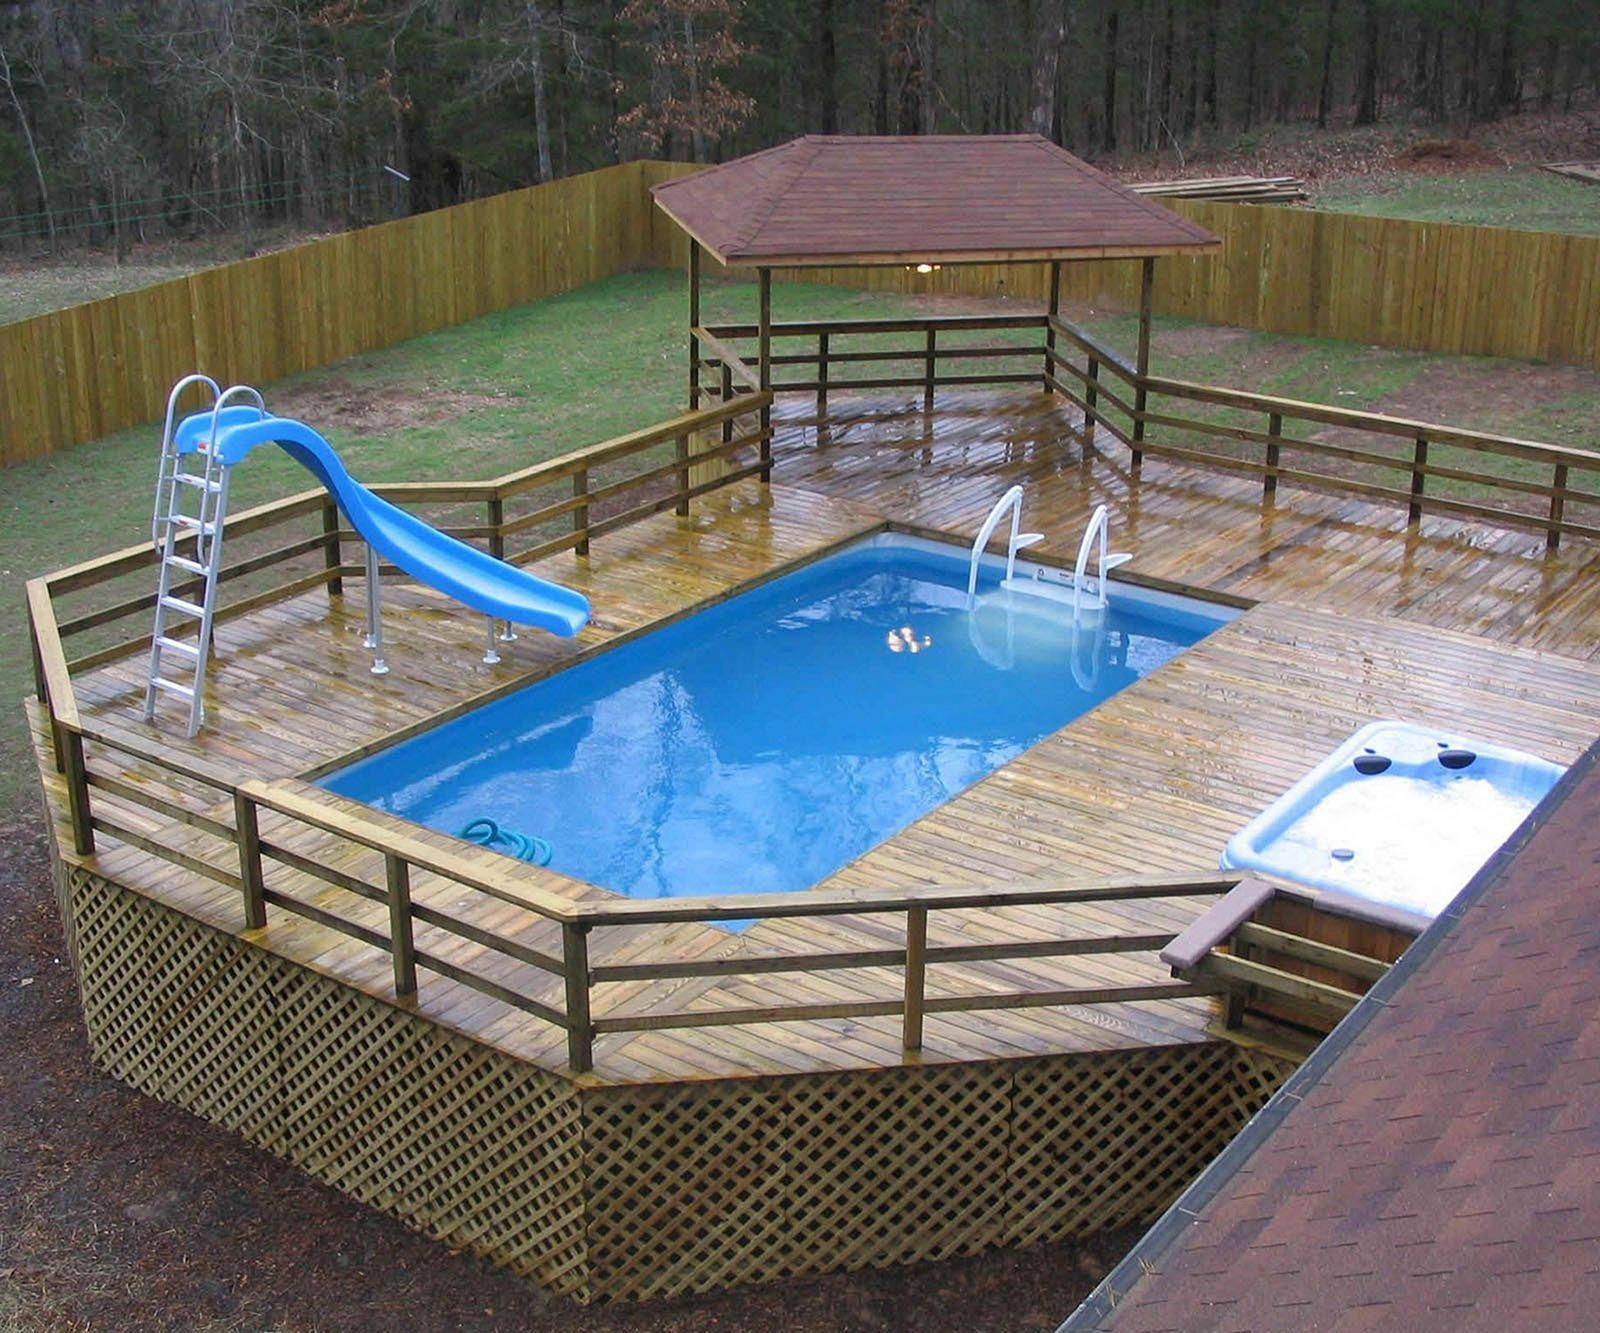 Top 109 diy above ground pool ideas on a budget read - Above ground pool ideas on a budget ...